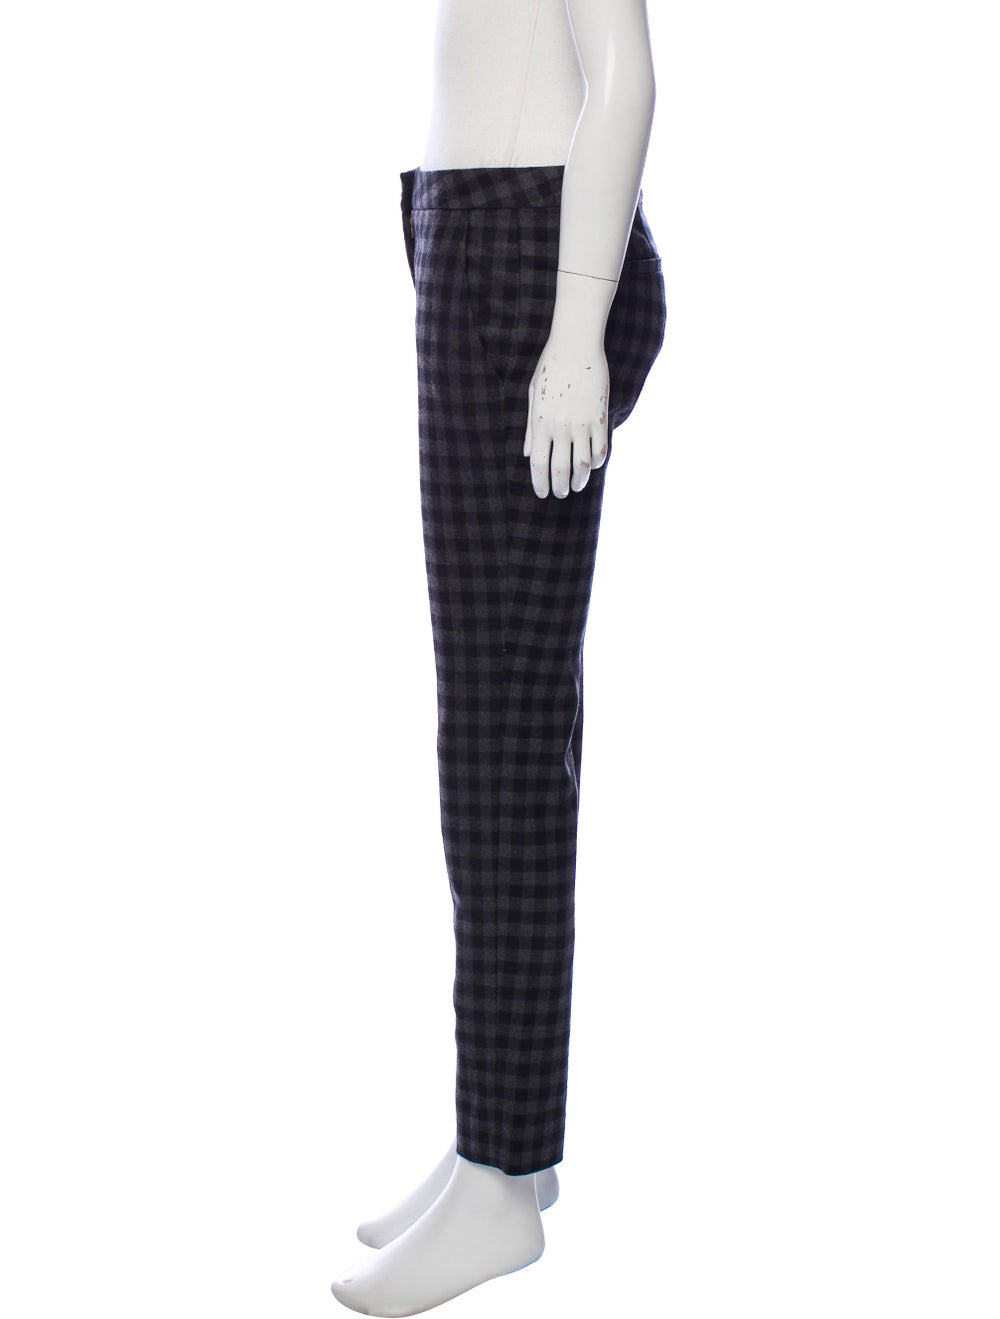 A.l.c. Checkered Skinny Pants Black - image 2